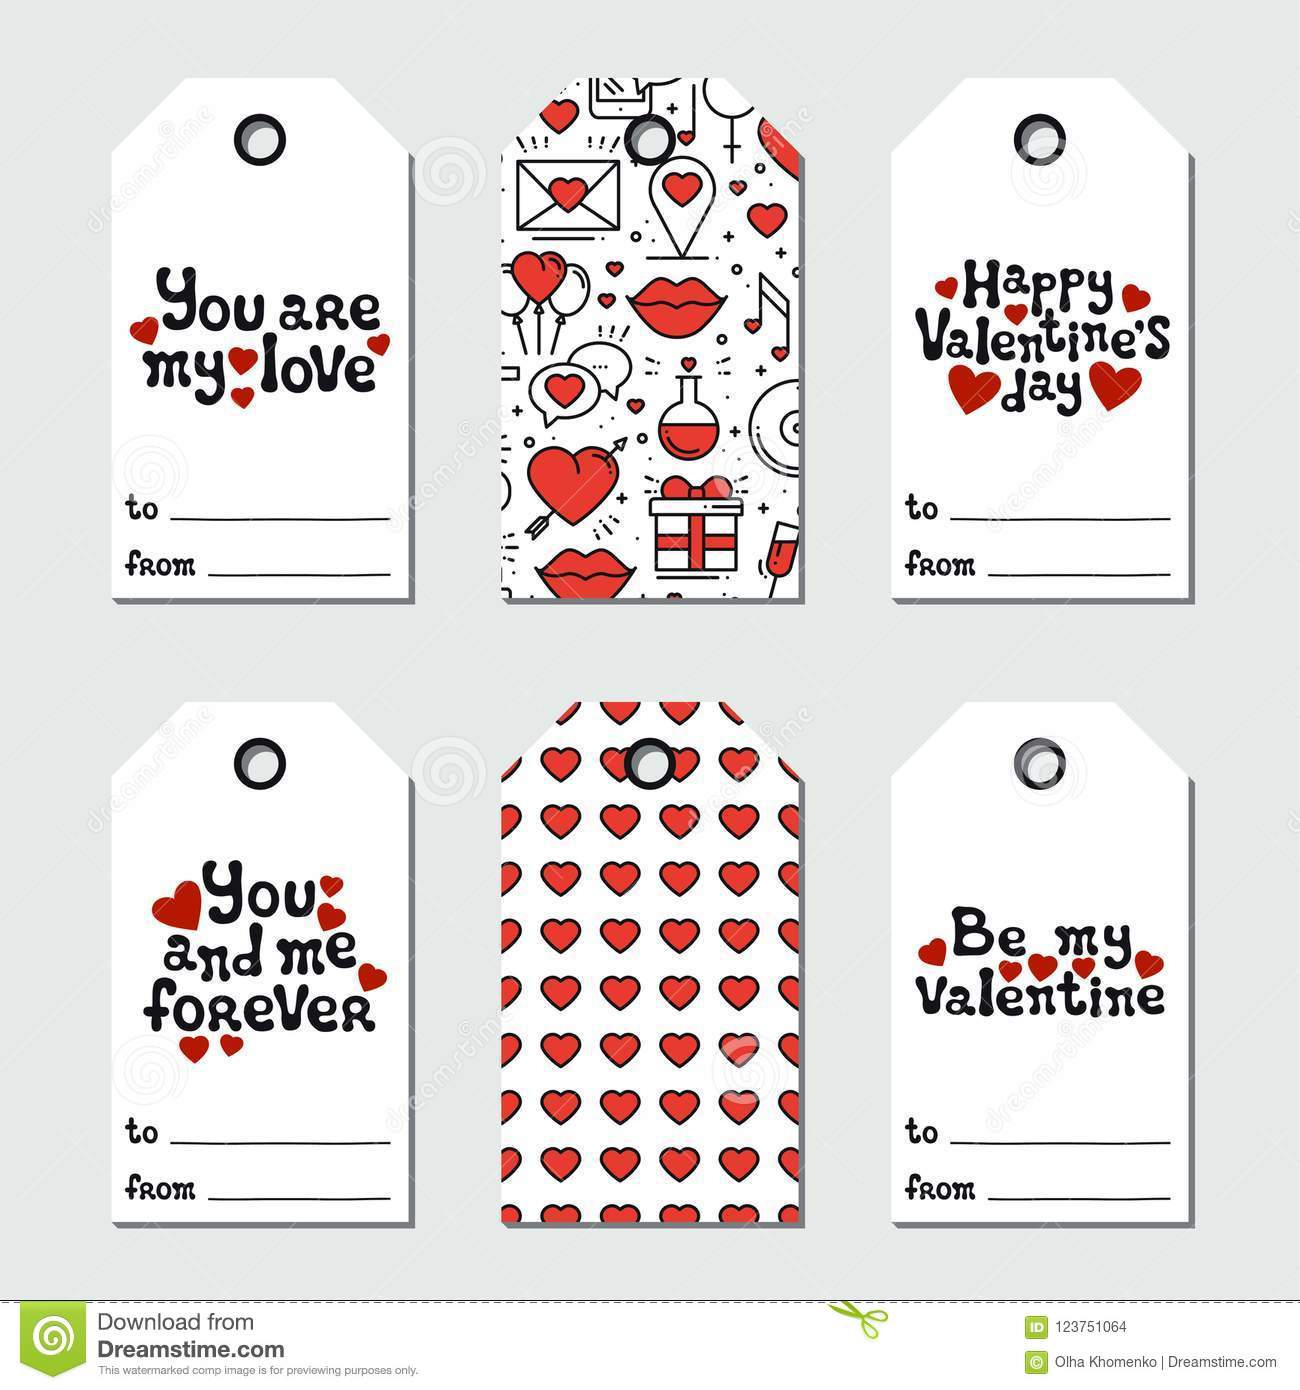 image regarding Holiday Tags Printable titled St Valentine`s Working day Present Tags. Printable Tags Selection